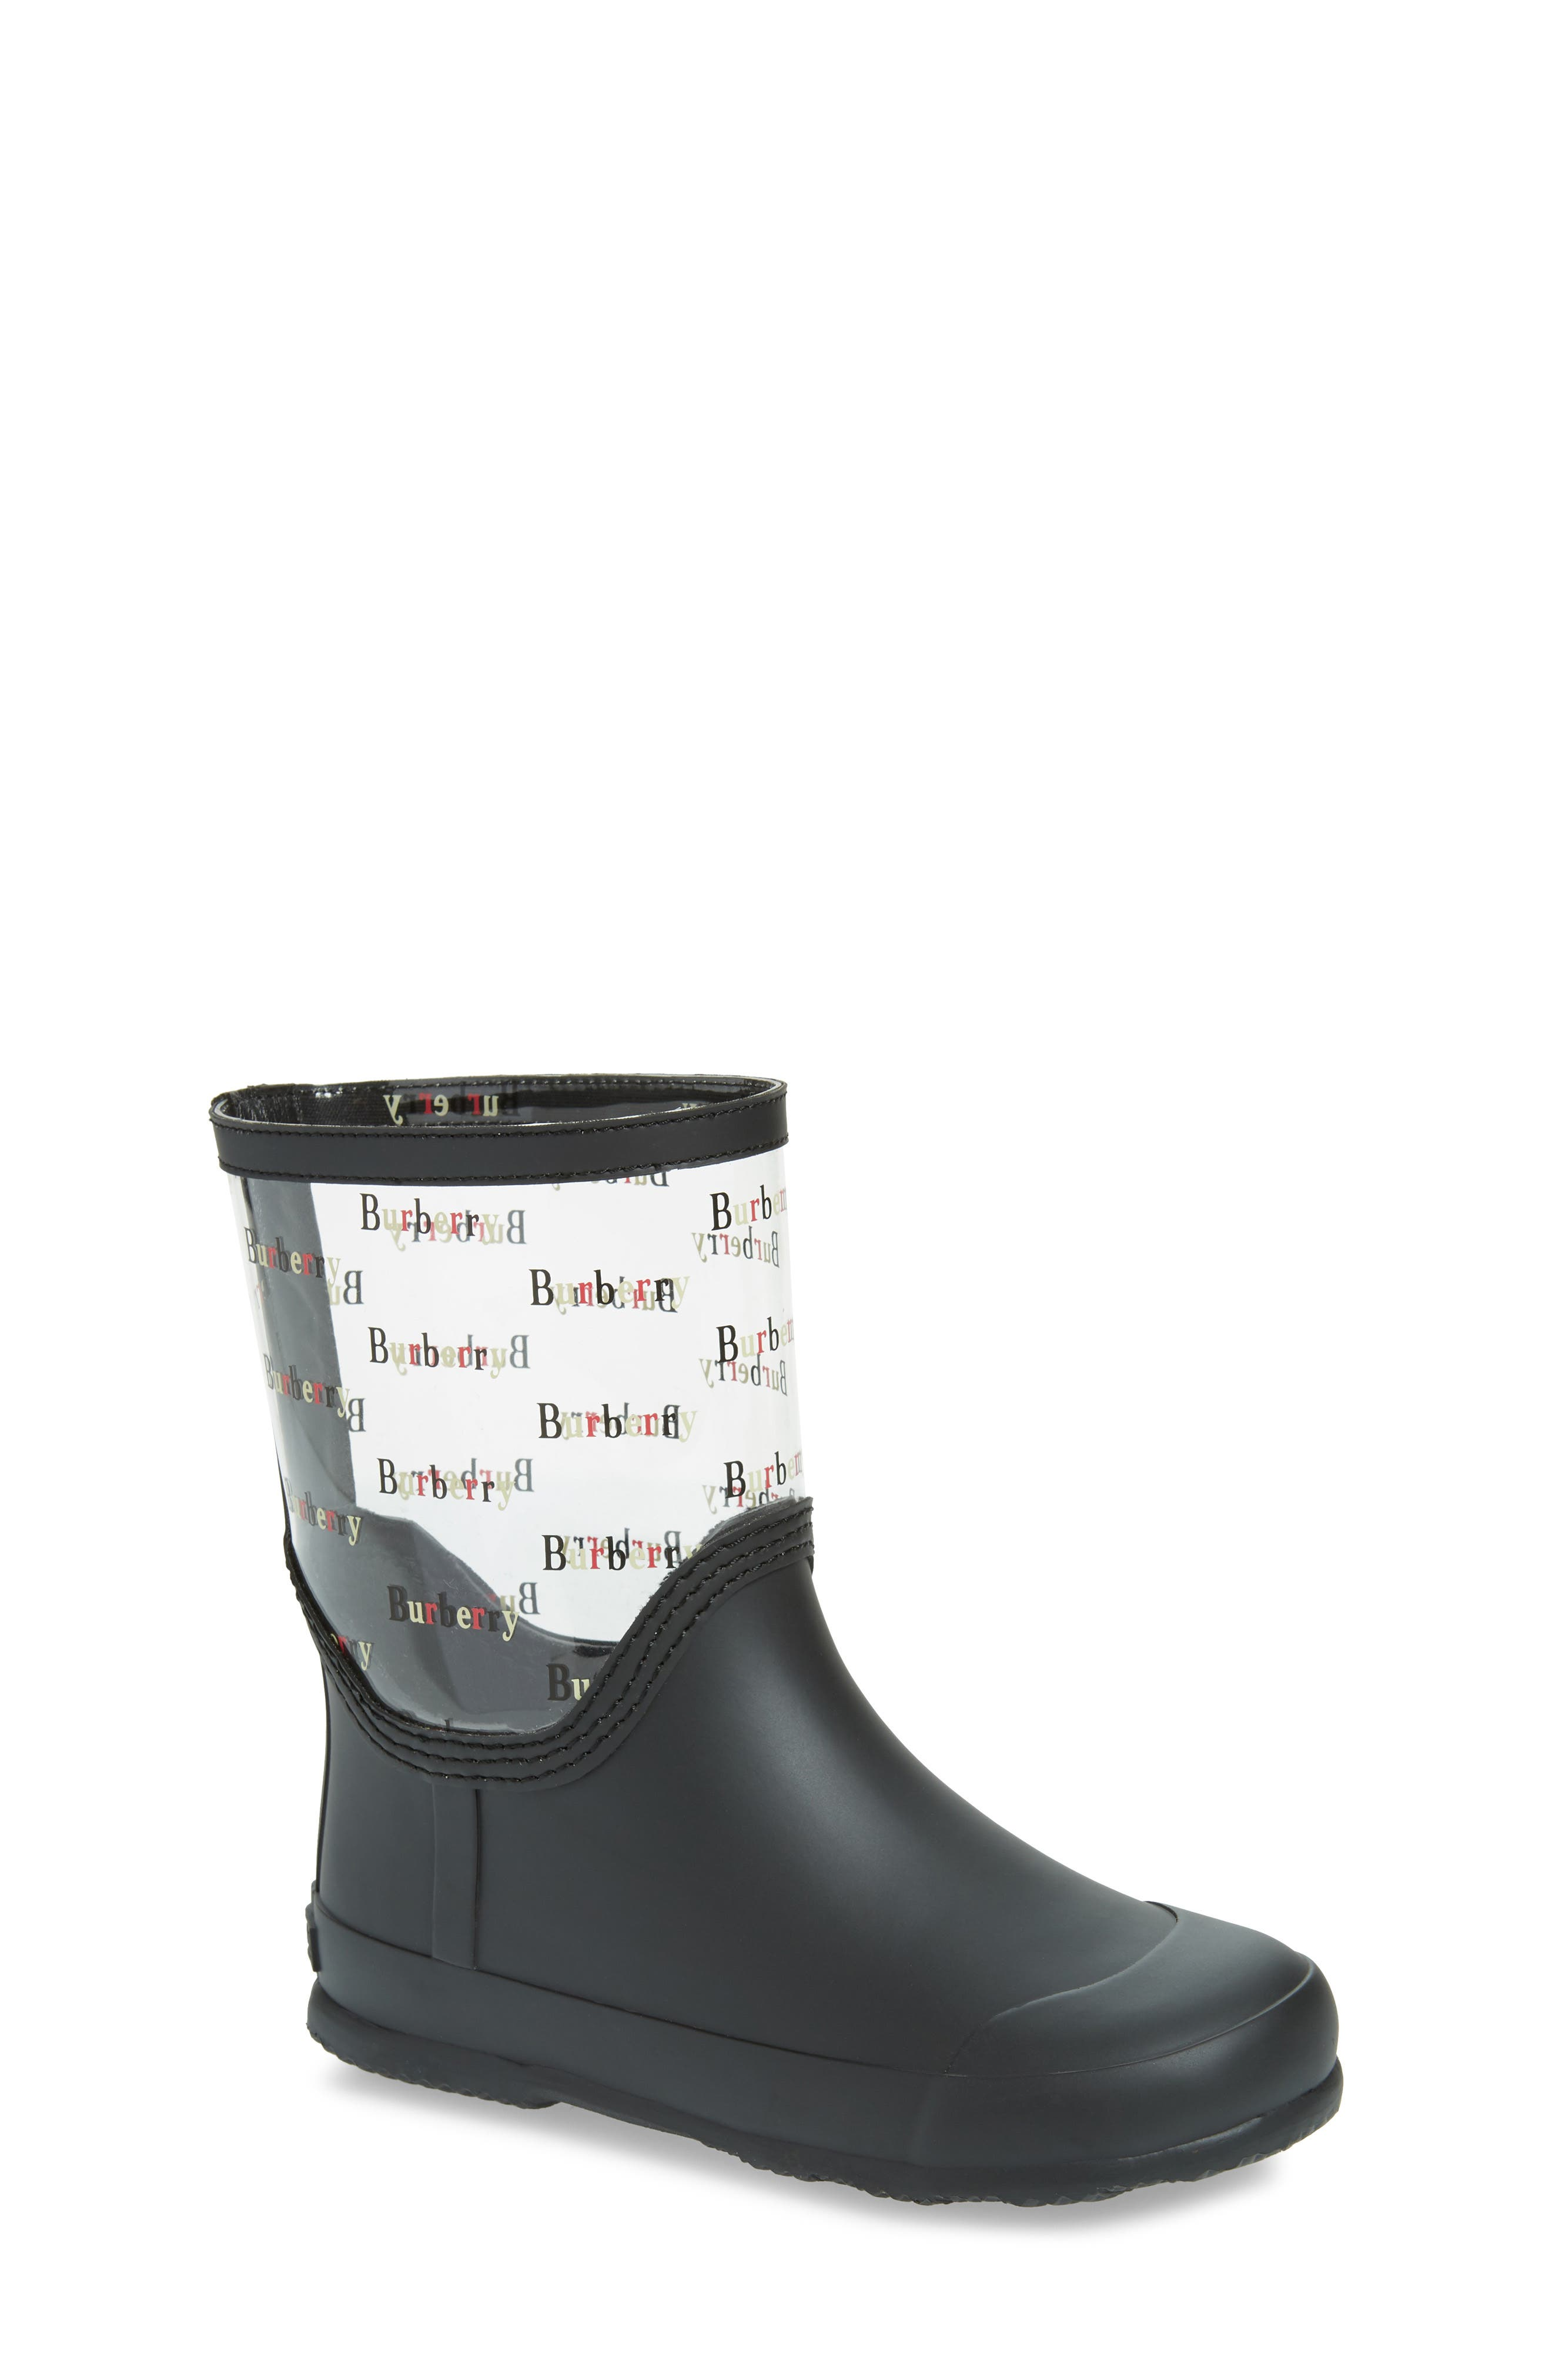 Frosty Waterproof Rain Boot,                             Main thumbnail 1, color,                             BLACK